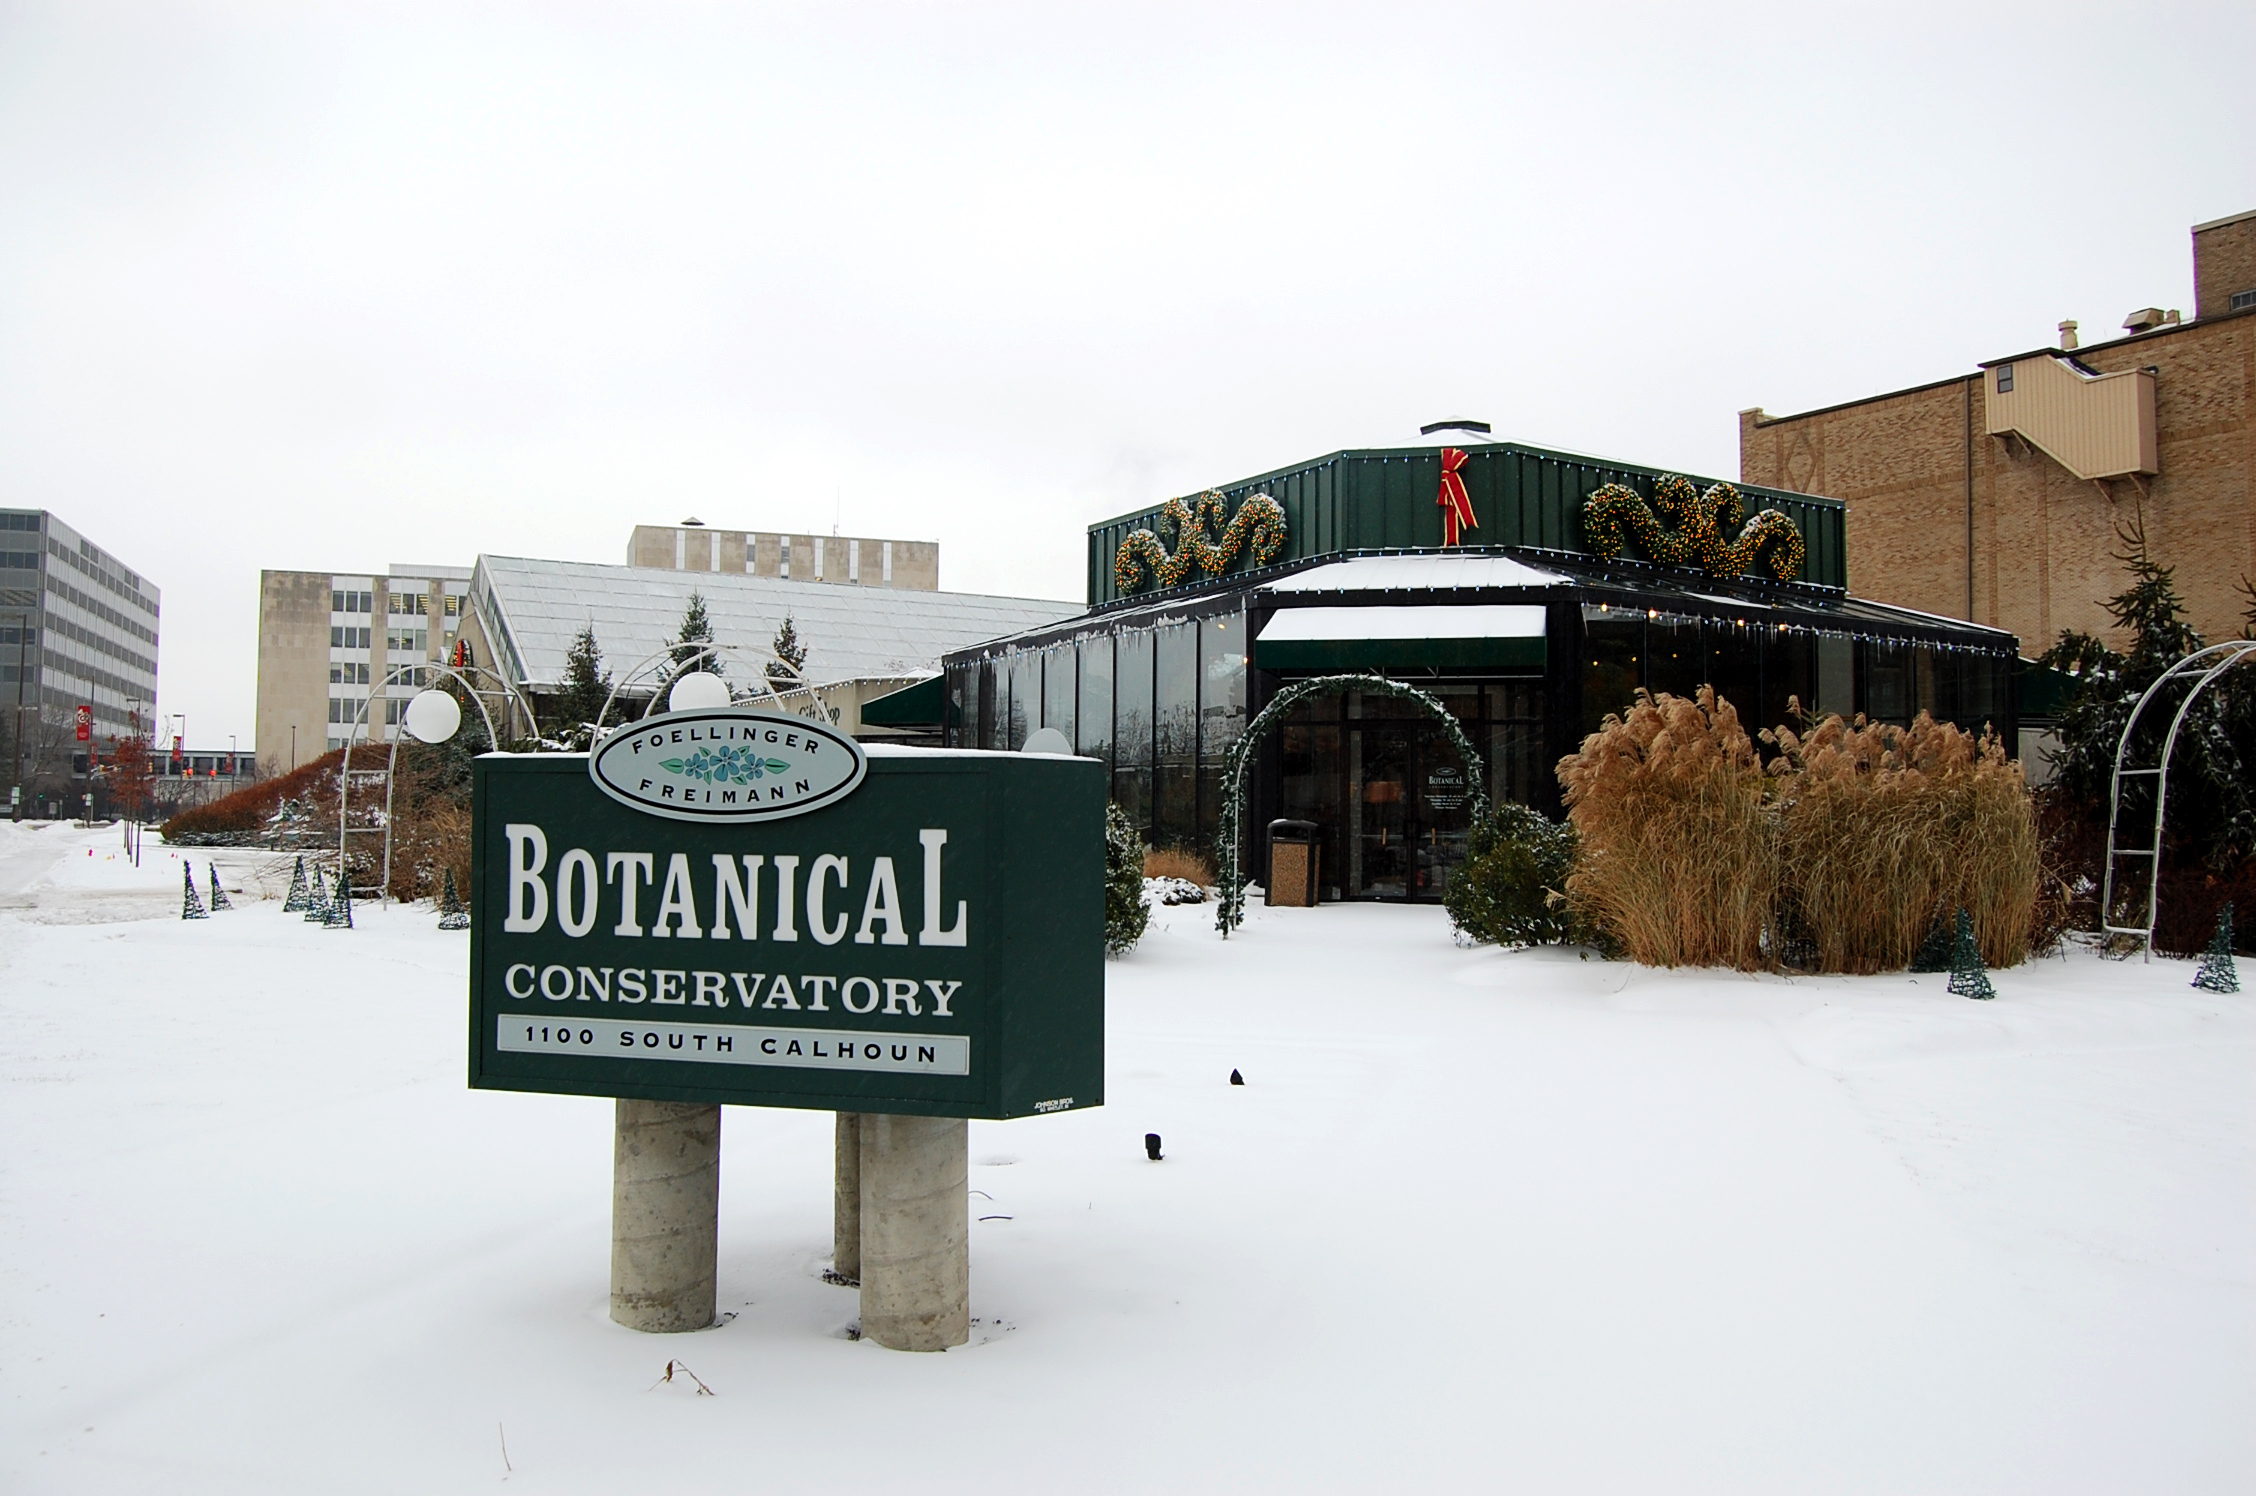 View of the Botanical Gardens from W Jefferson Blvd, Ft. Wayne, IN